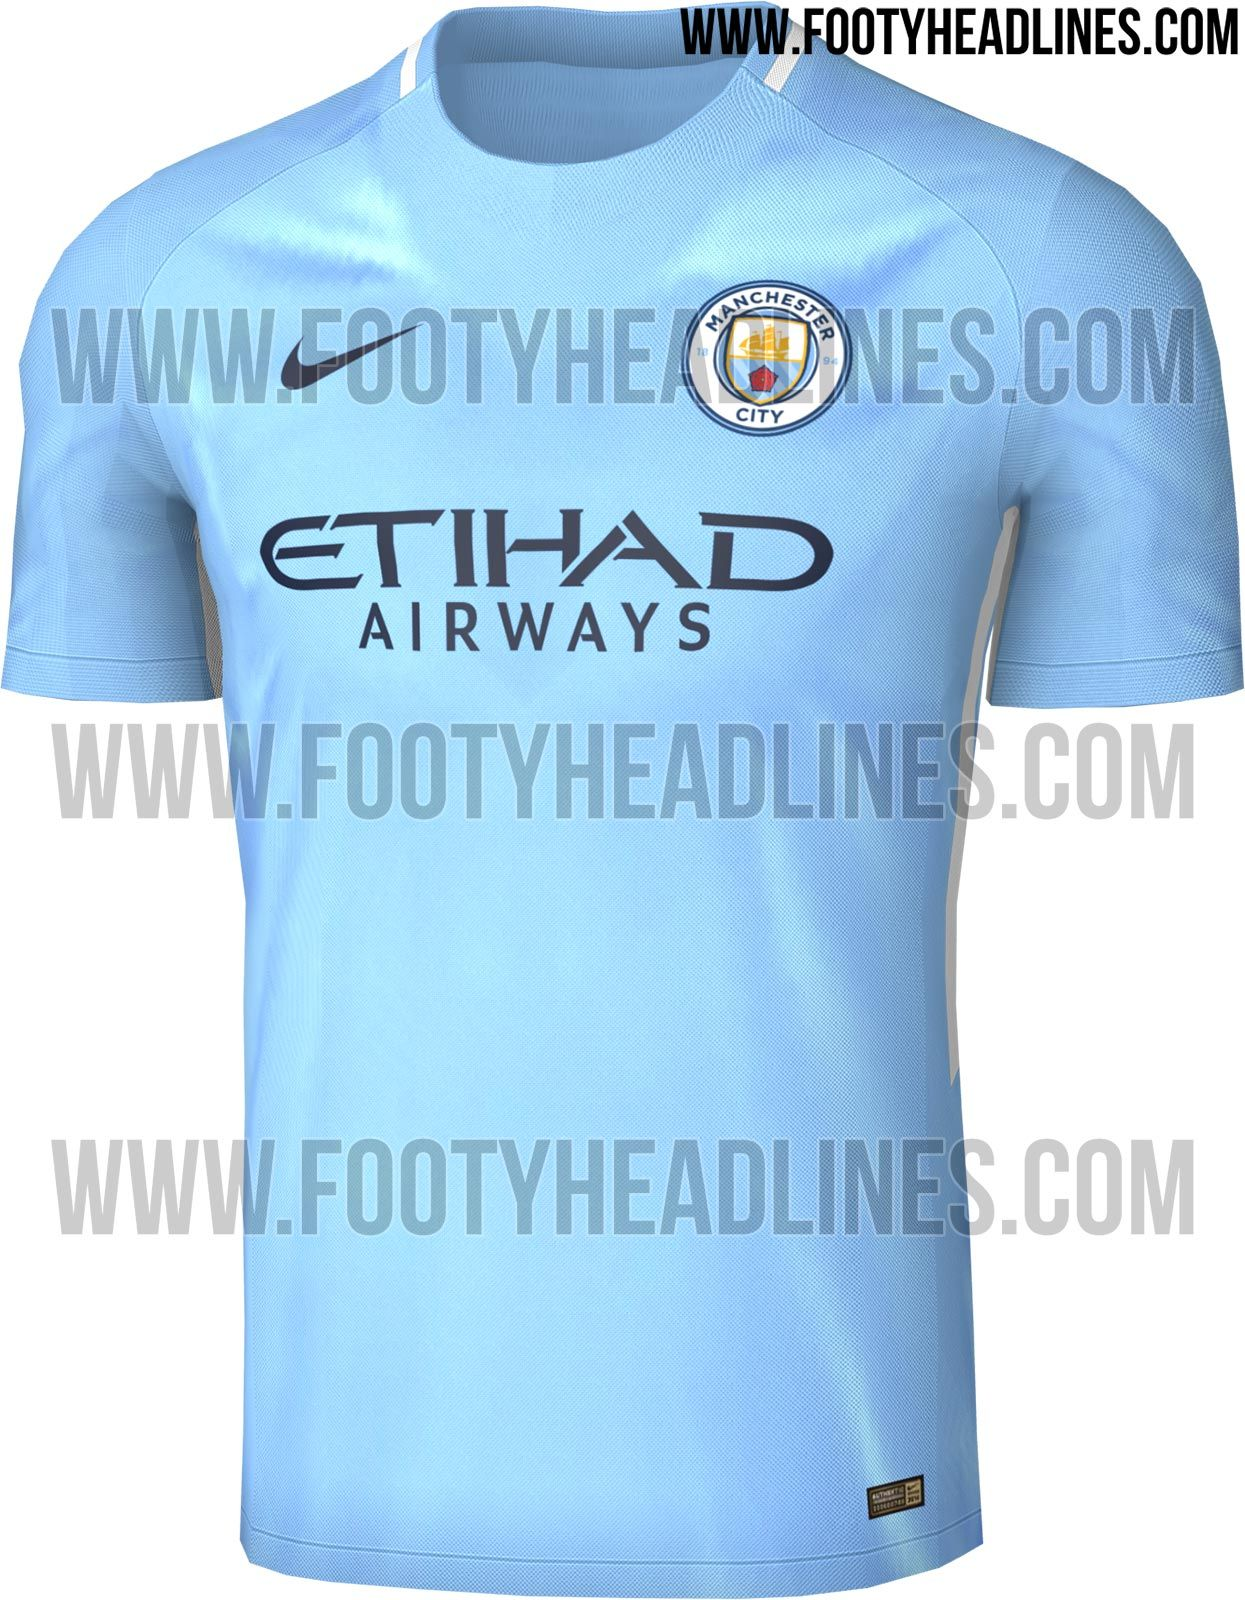 The Manchester City kit introduces a clean, smart look for the Premier  League club. Made by Nike, the Manchester City home shirt was finally  released on May